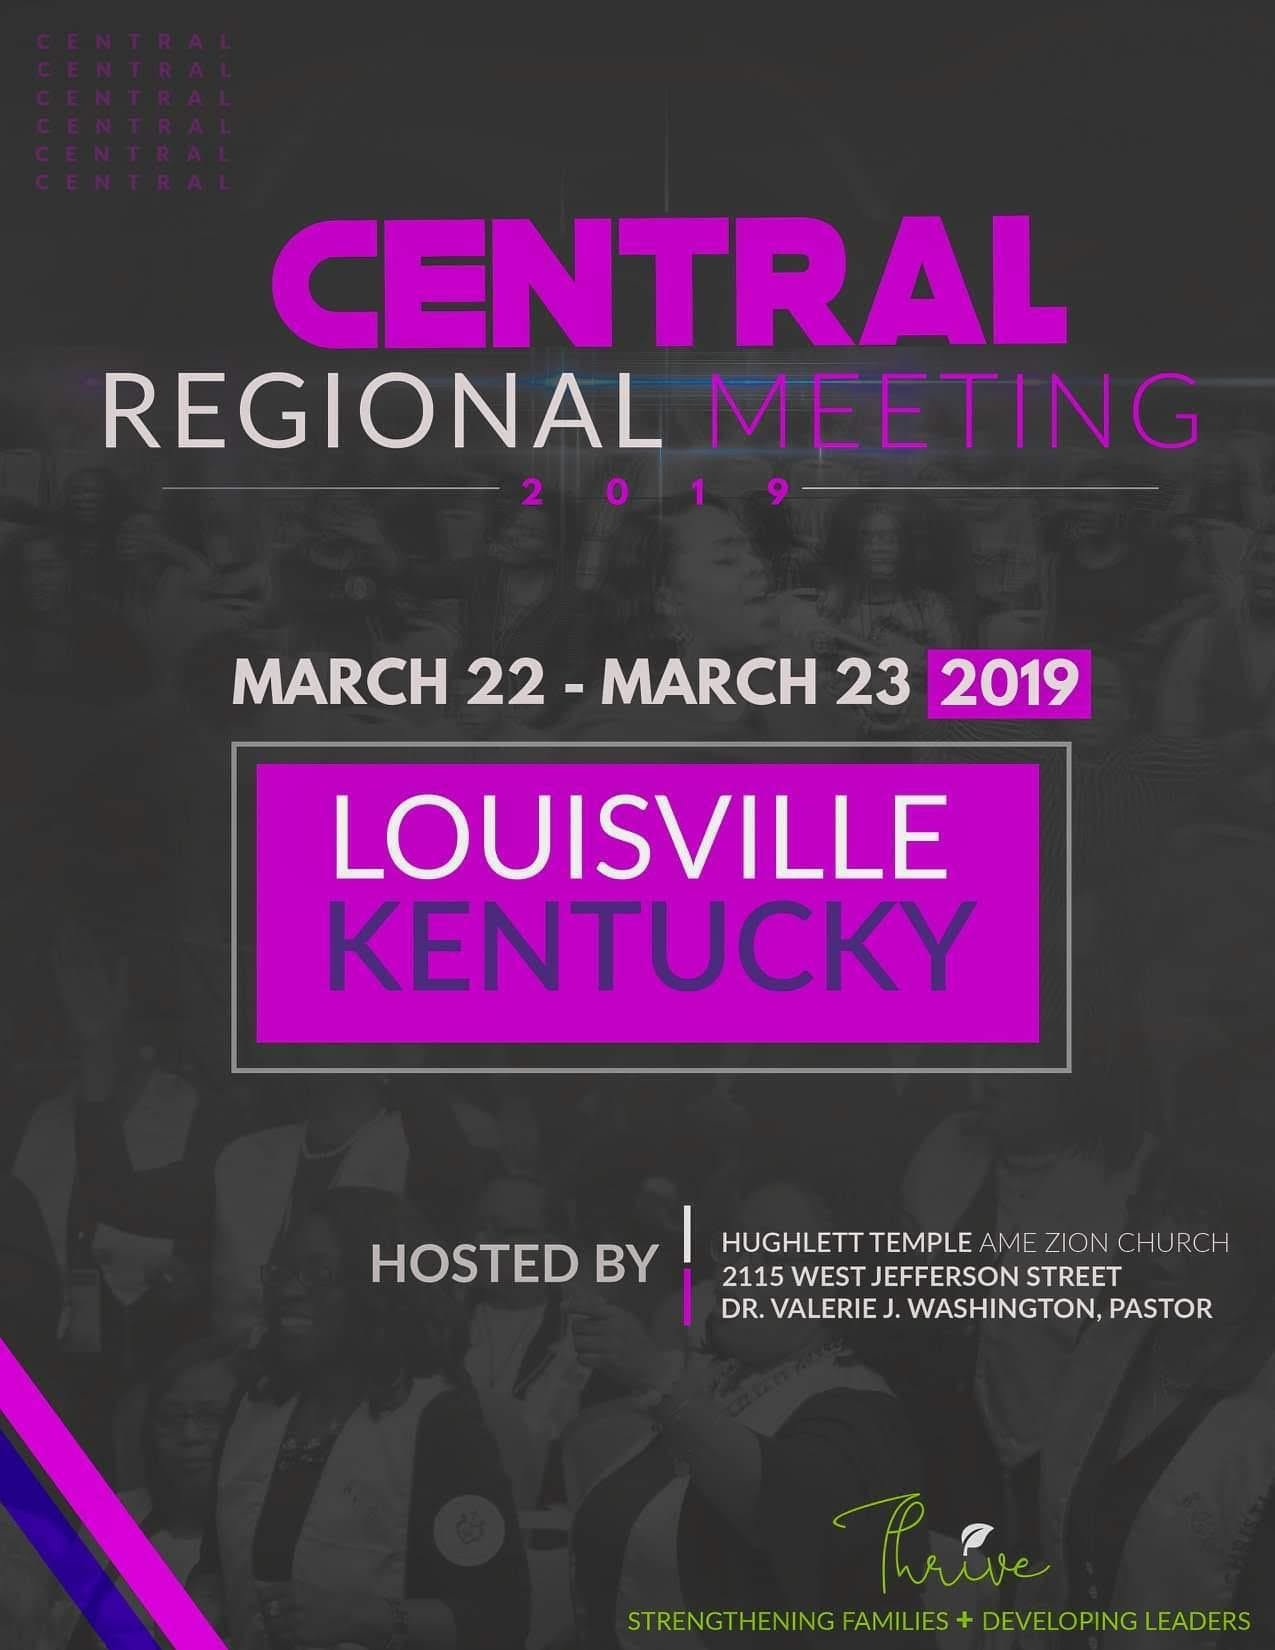 Central Regional Meeting 2019